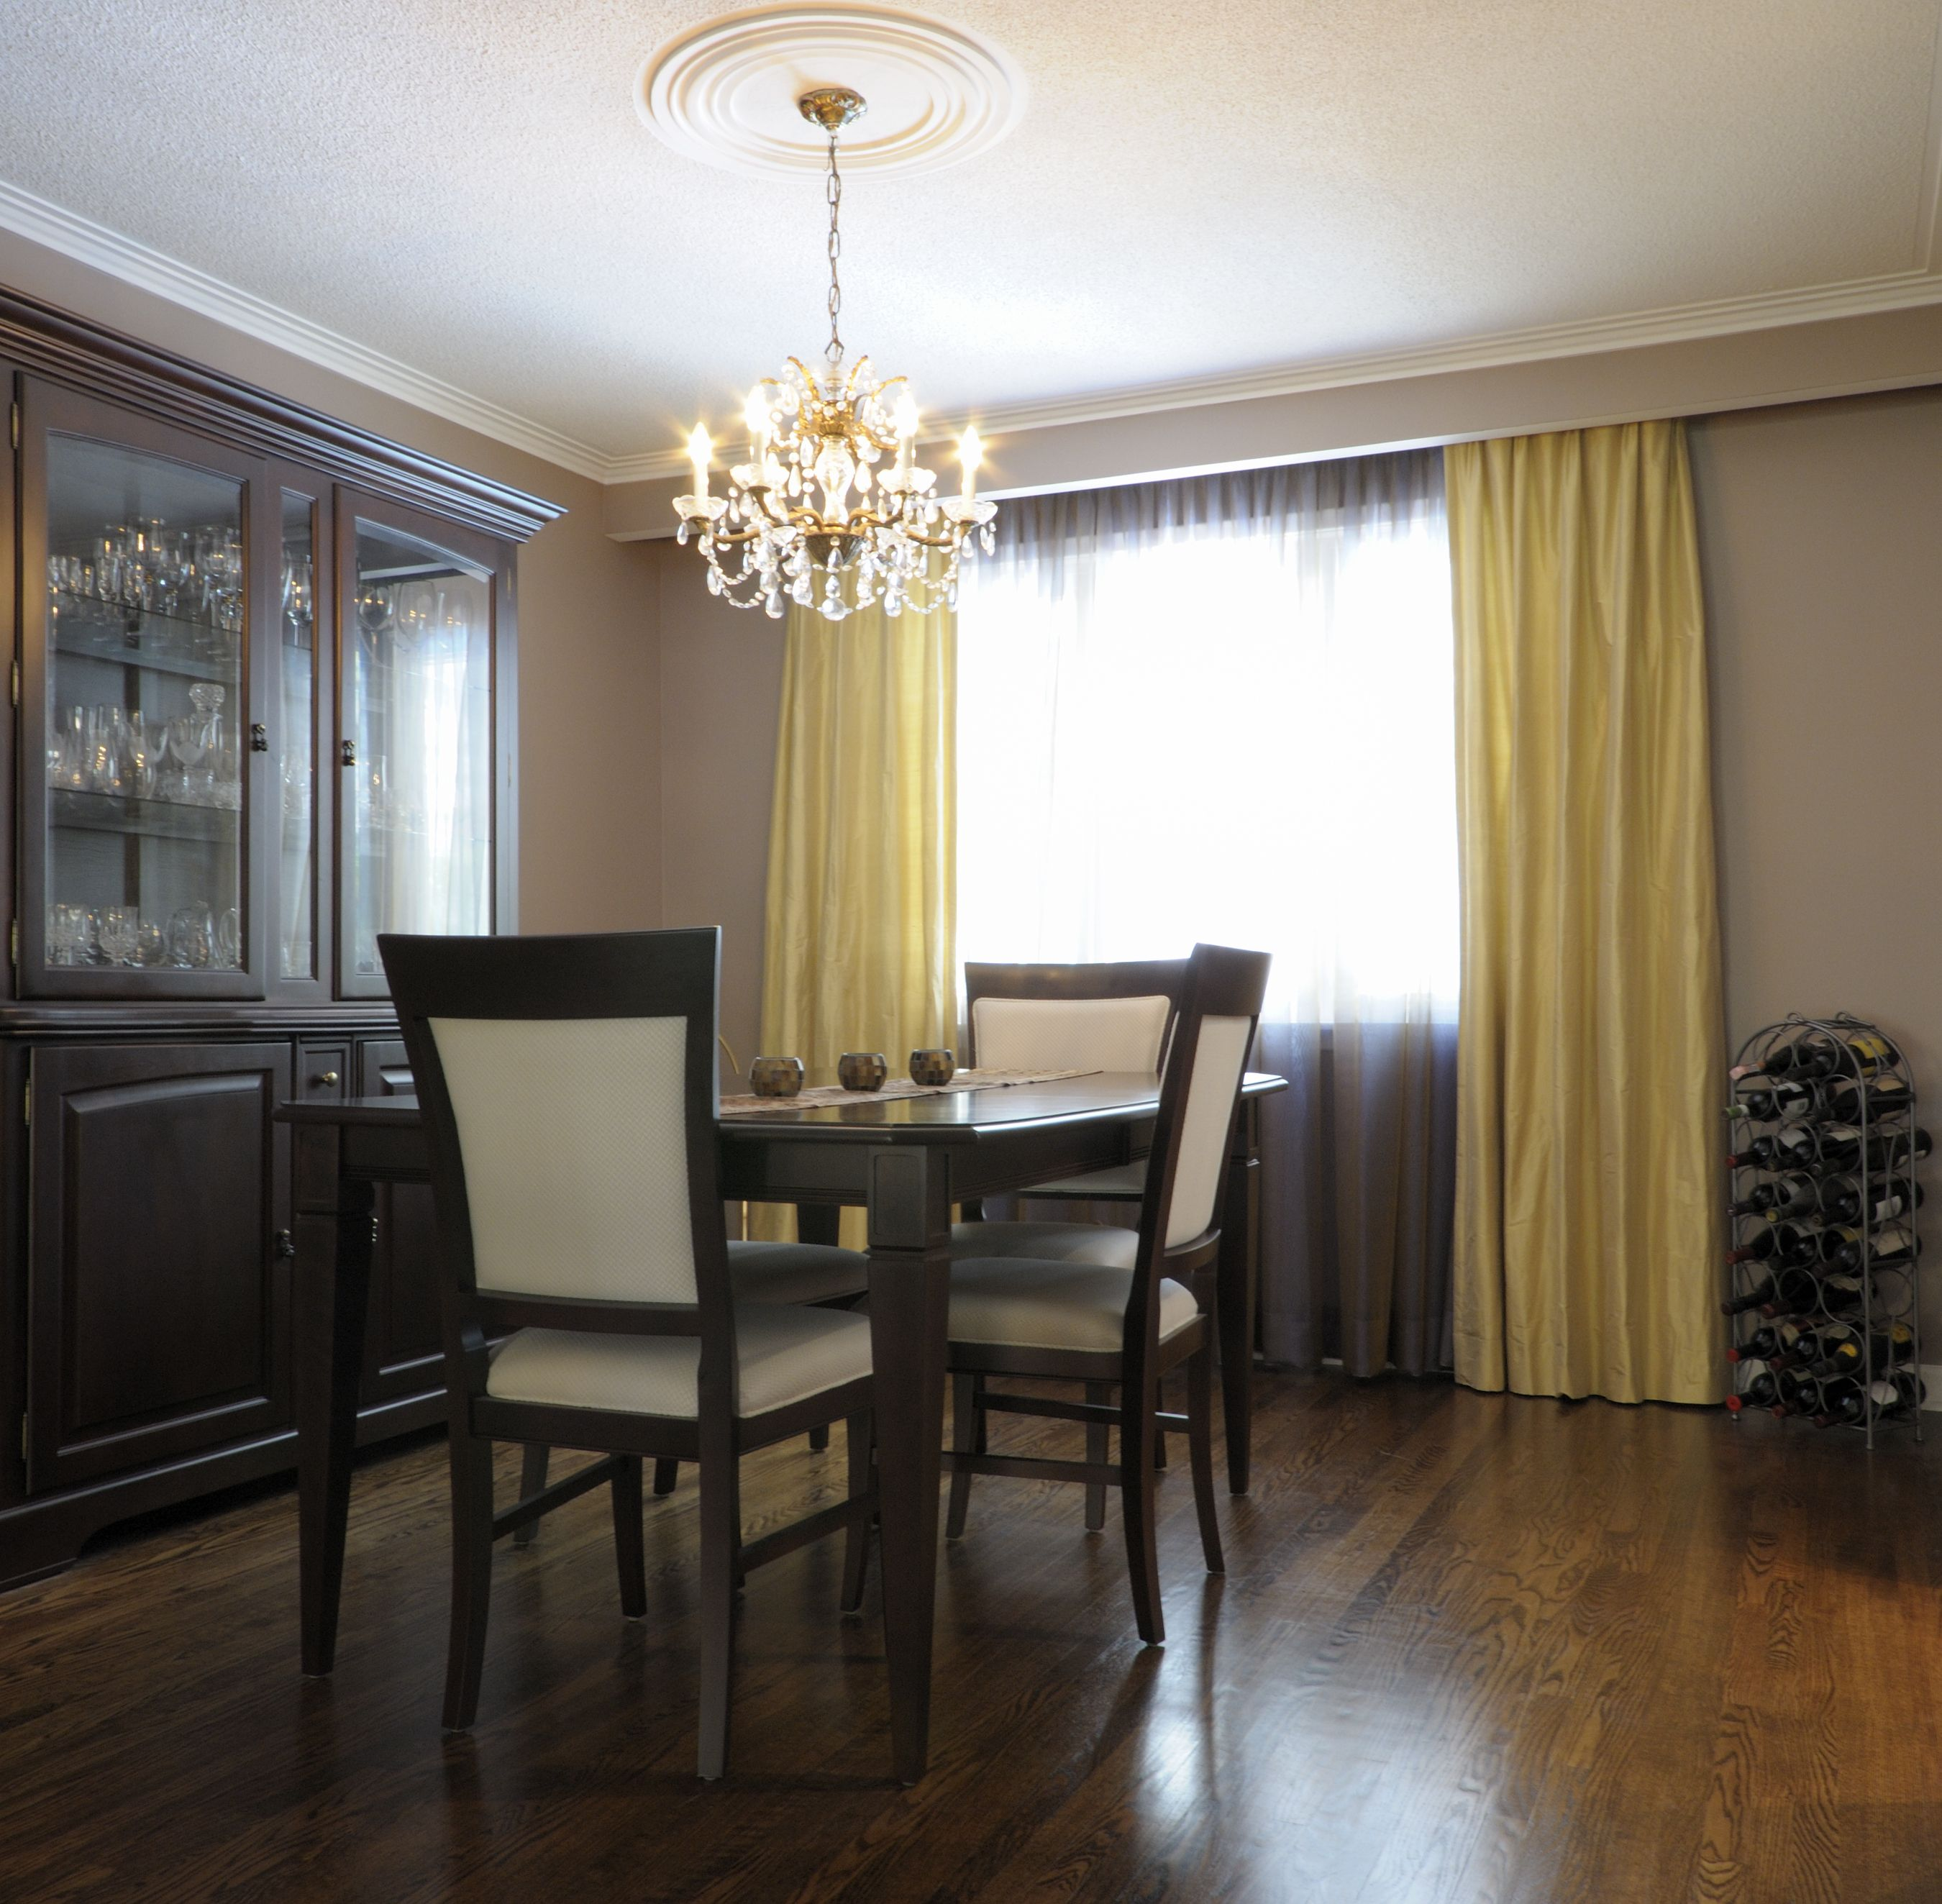 A transitional dining room using bright corn silk colored